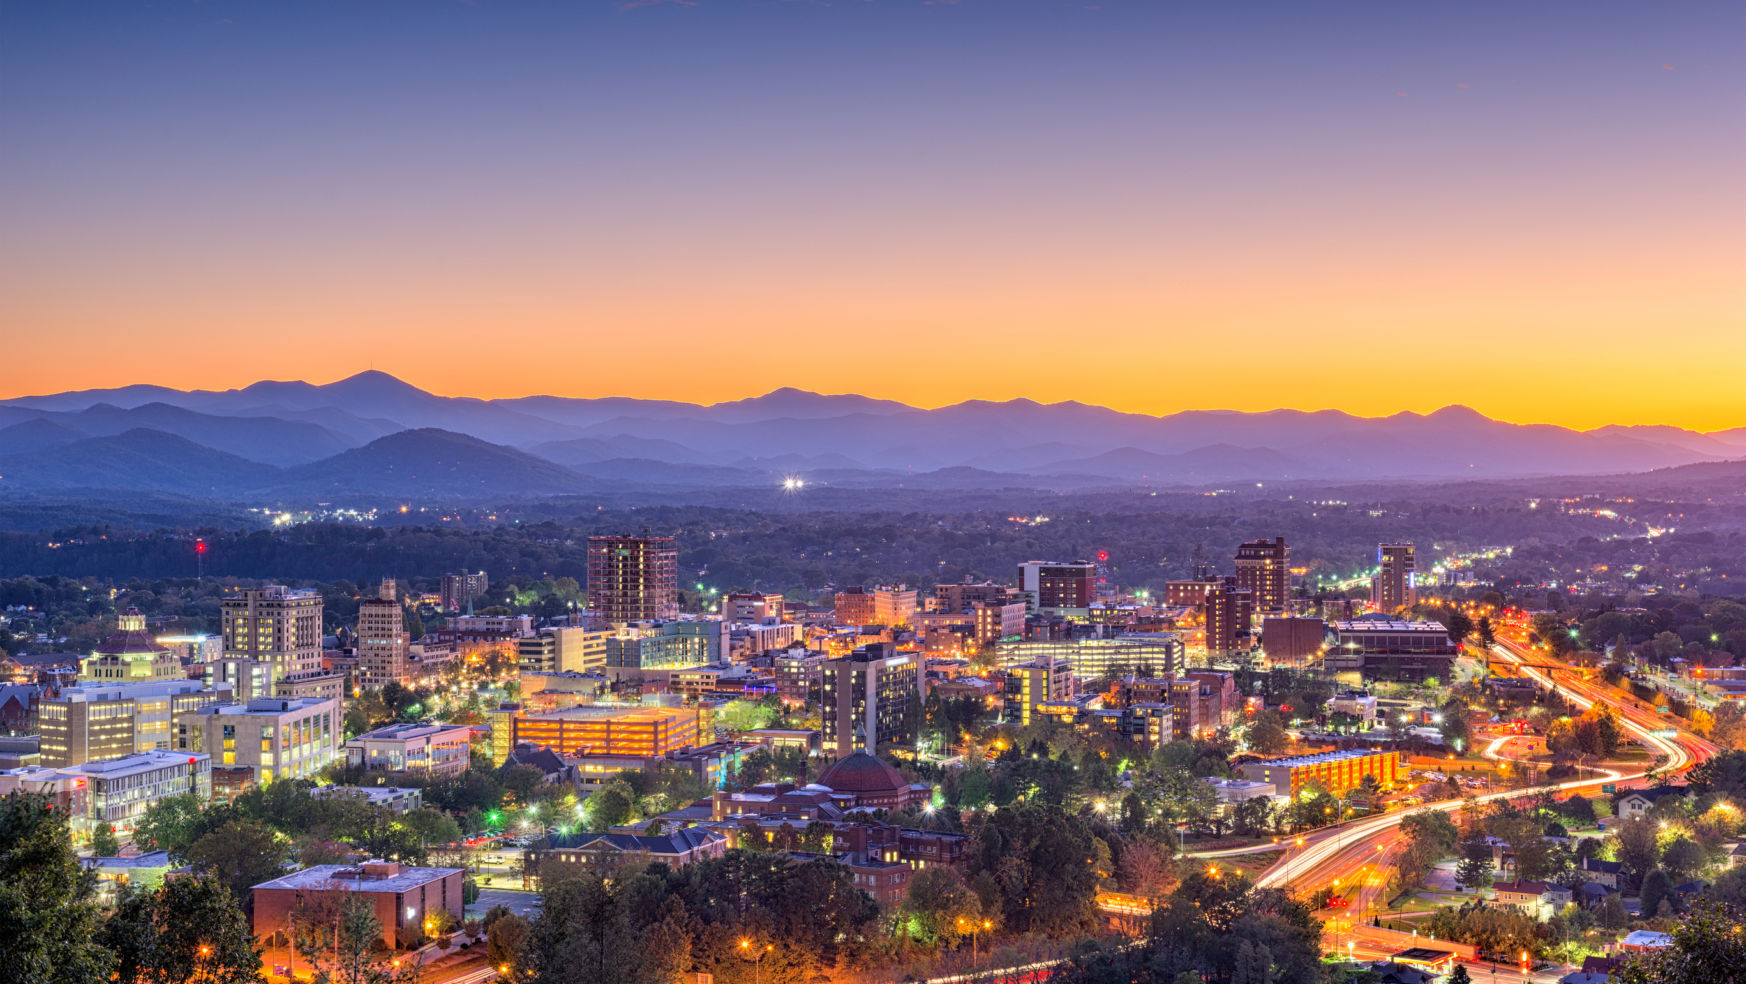 View of Asheville, NC during dusk light up by downtown